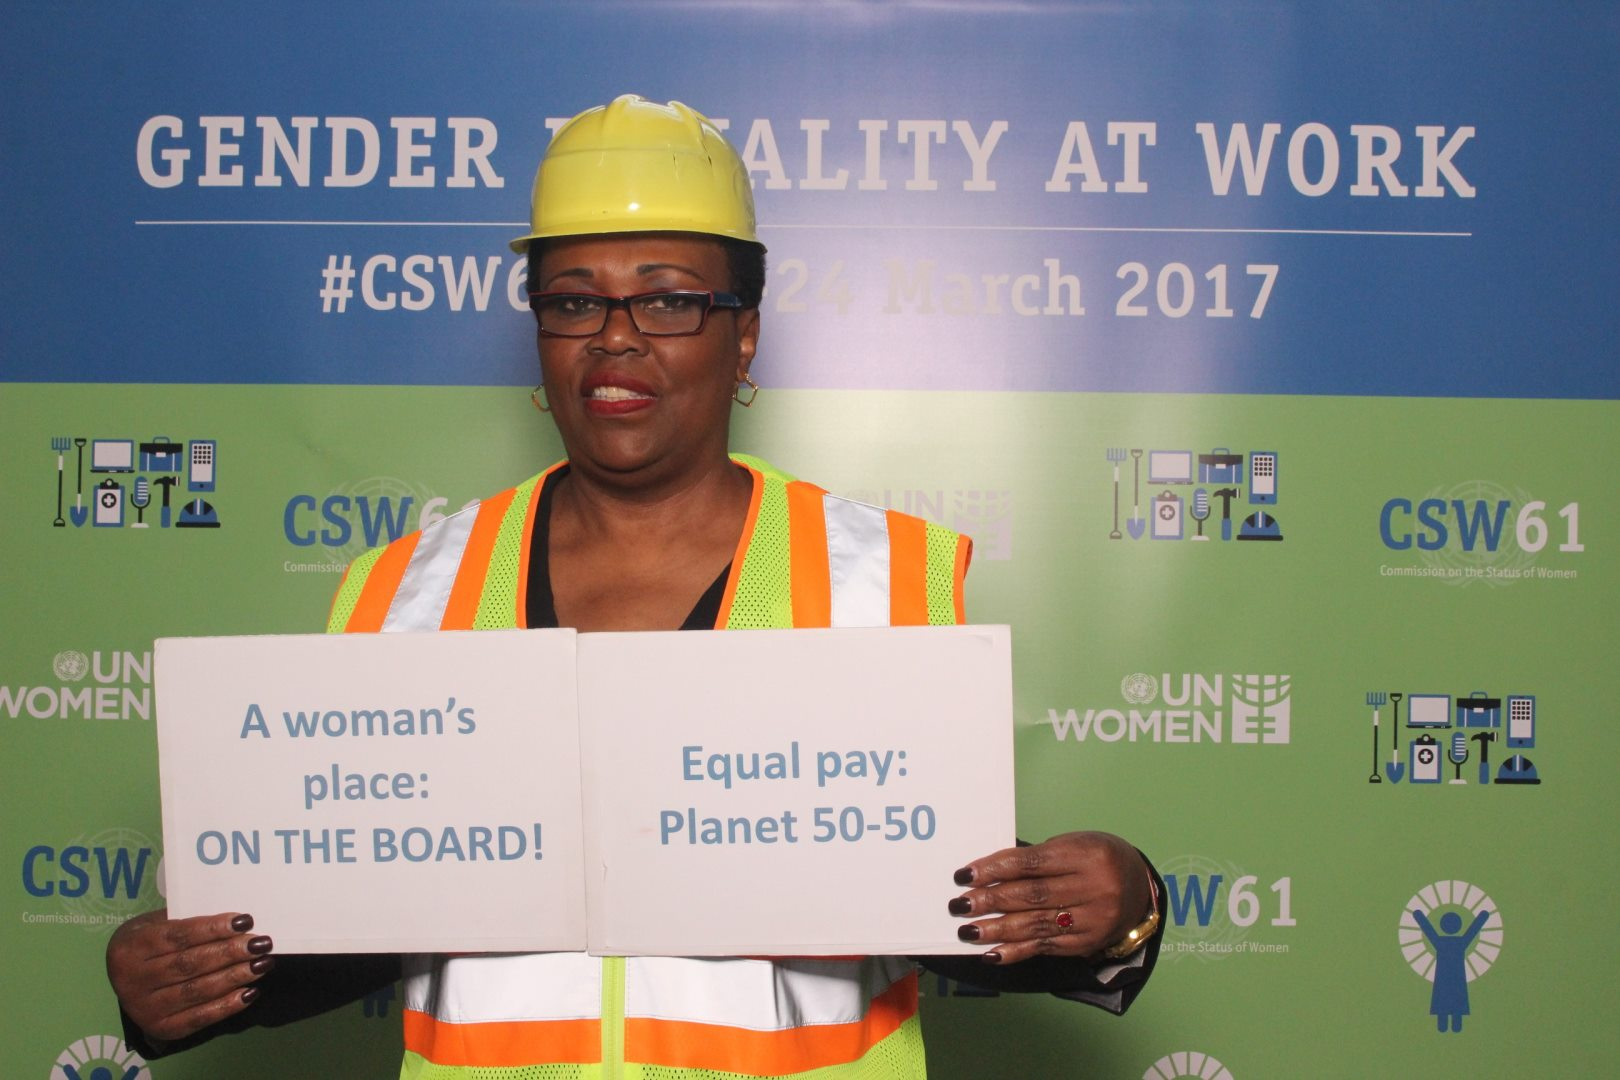 Women in the Changing World of Work – Planet 50-50 by 2030: What does this mean?